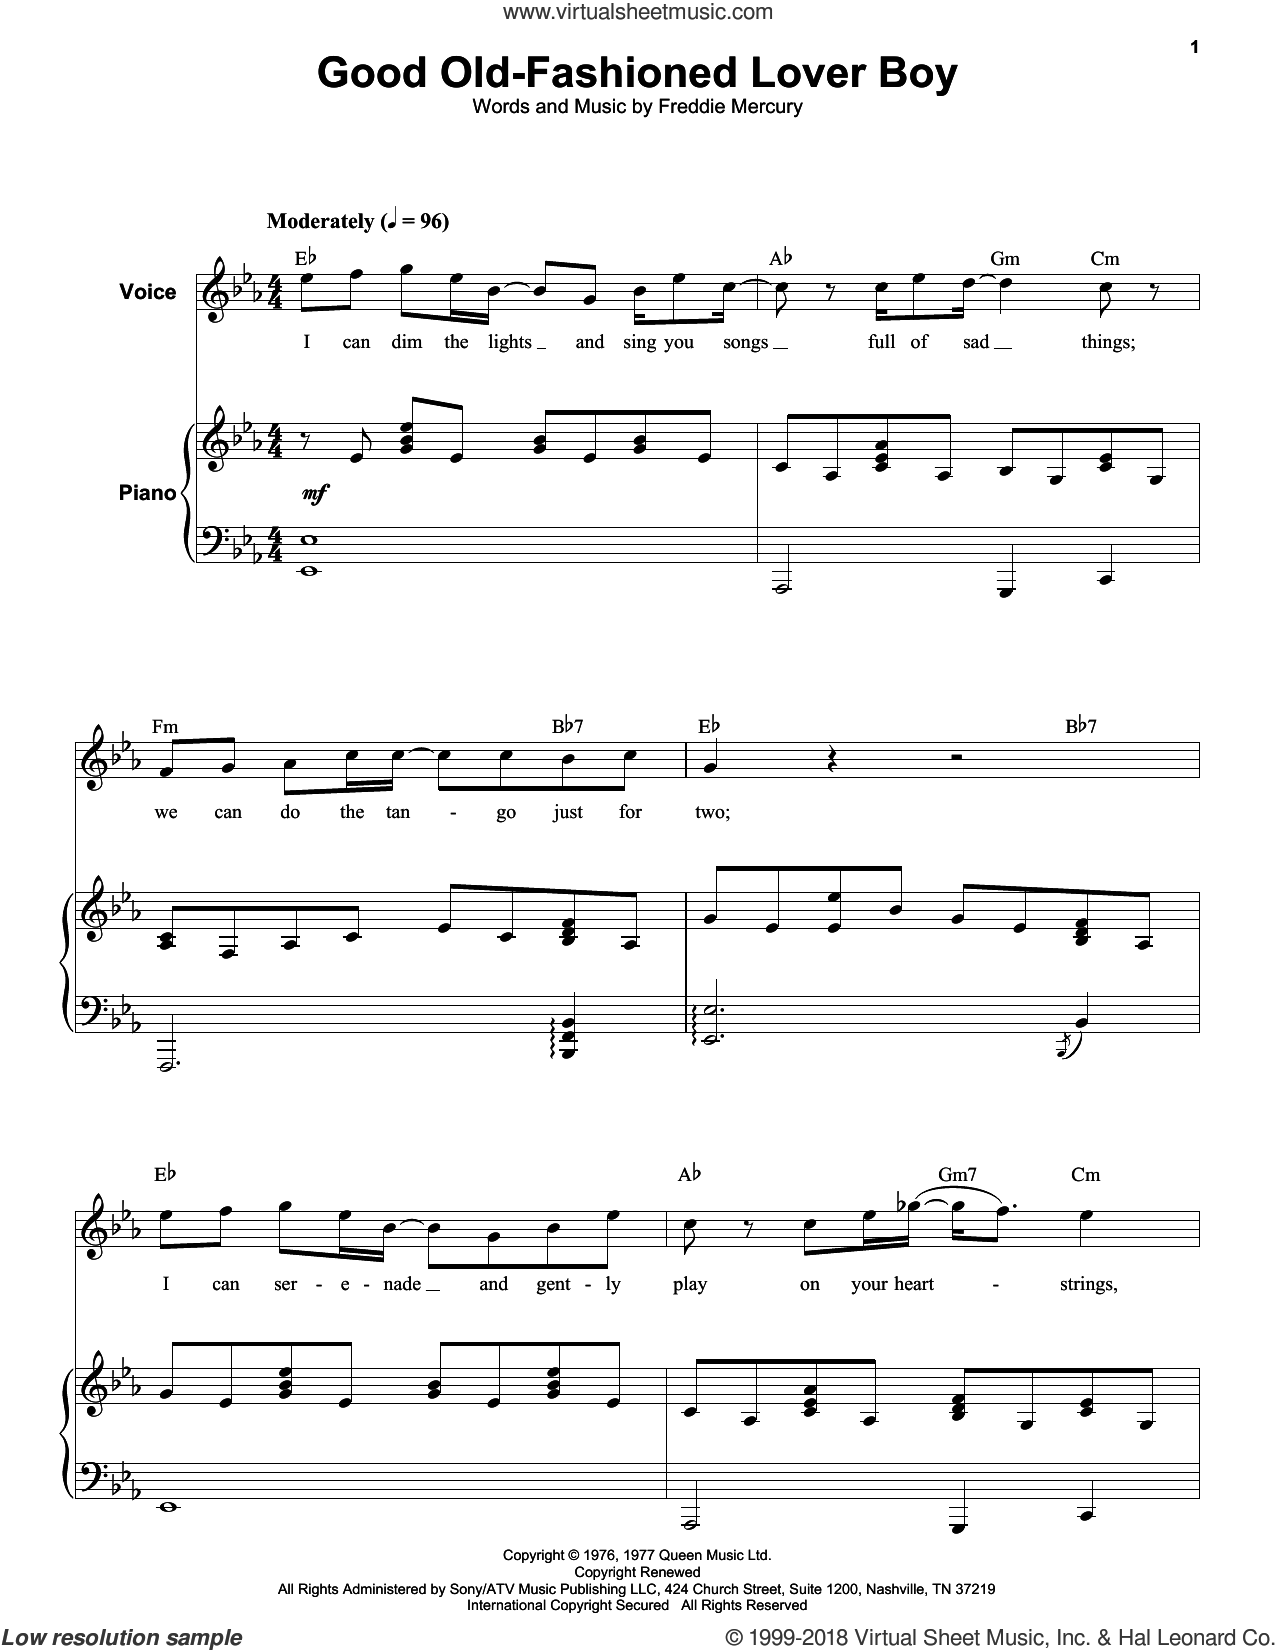 Good Old-Fashioned Lover Boy sheet music for keyboard or piano by Queen and Freddie Mercury, intermediate keyboard or piano. Score Image Preview.